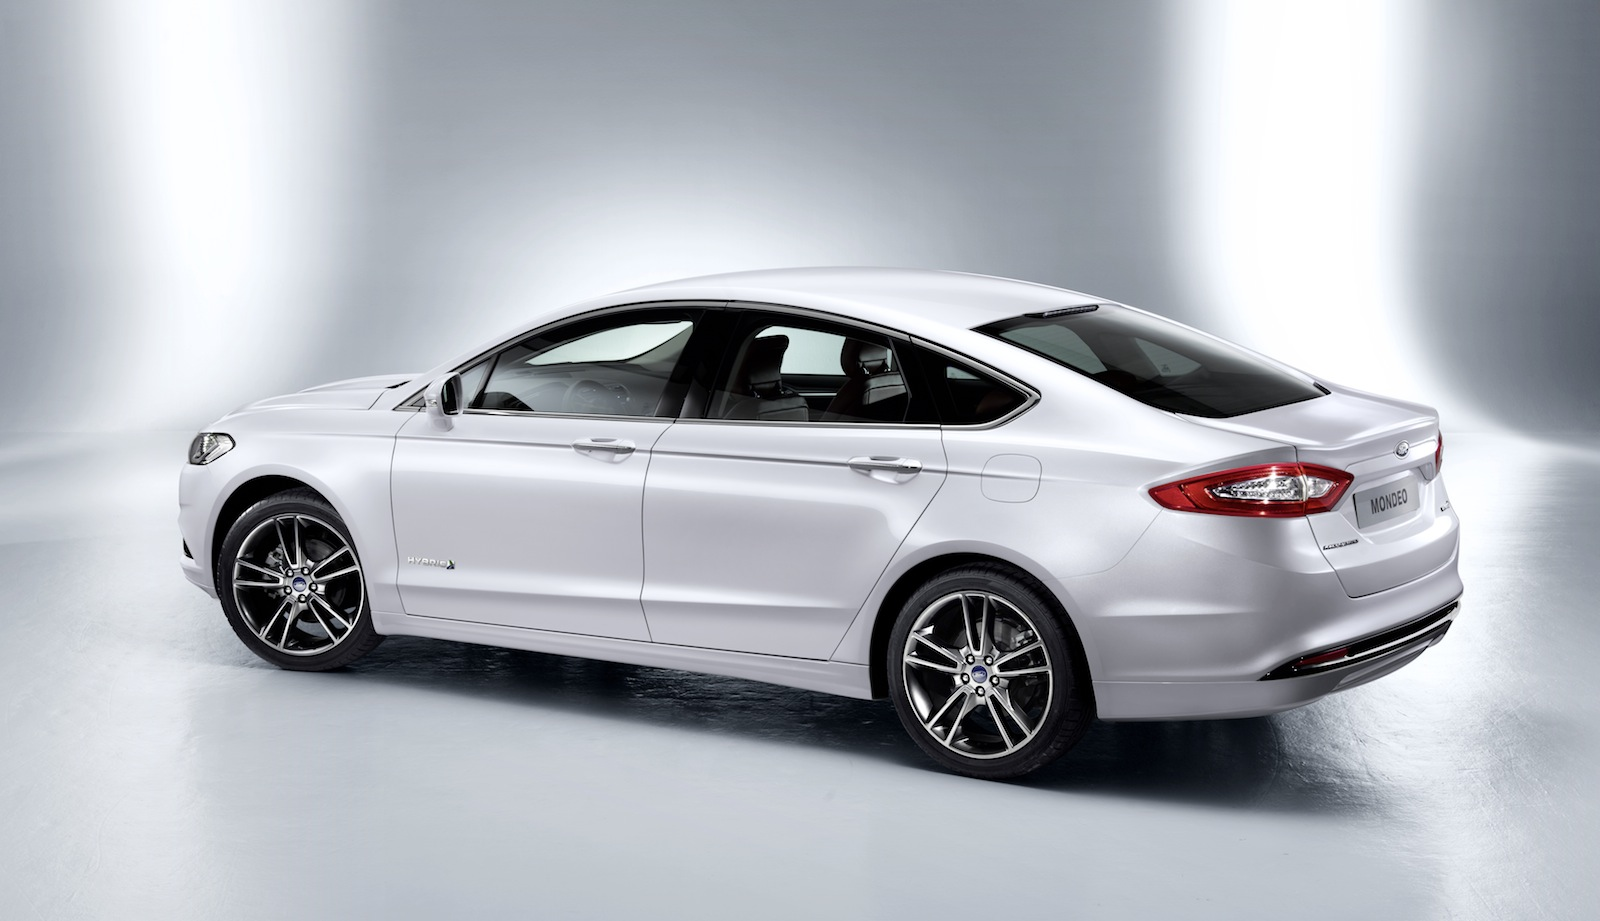 Ford Mondeo 2015 White >> Now Tıme For Tecnology: 2013 FORD MONDEO